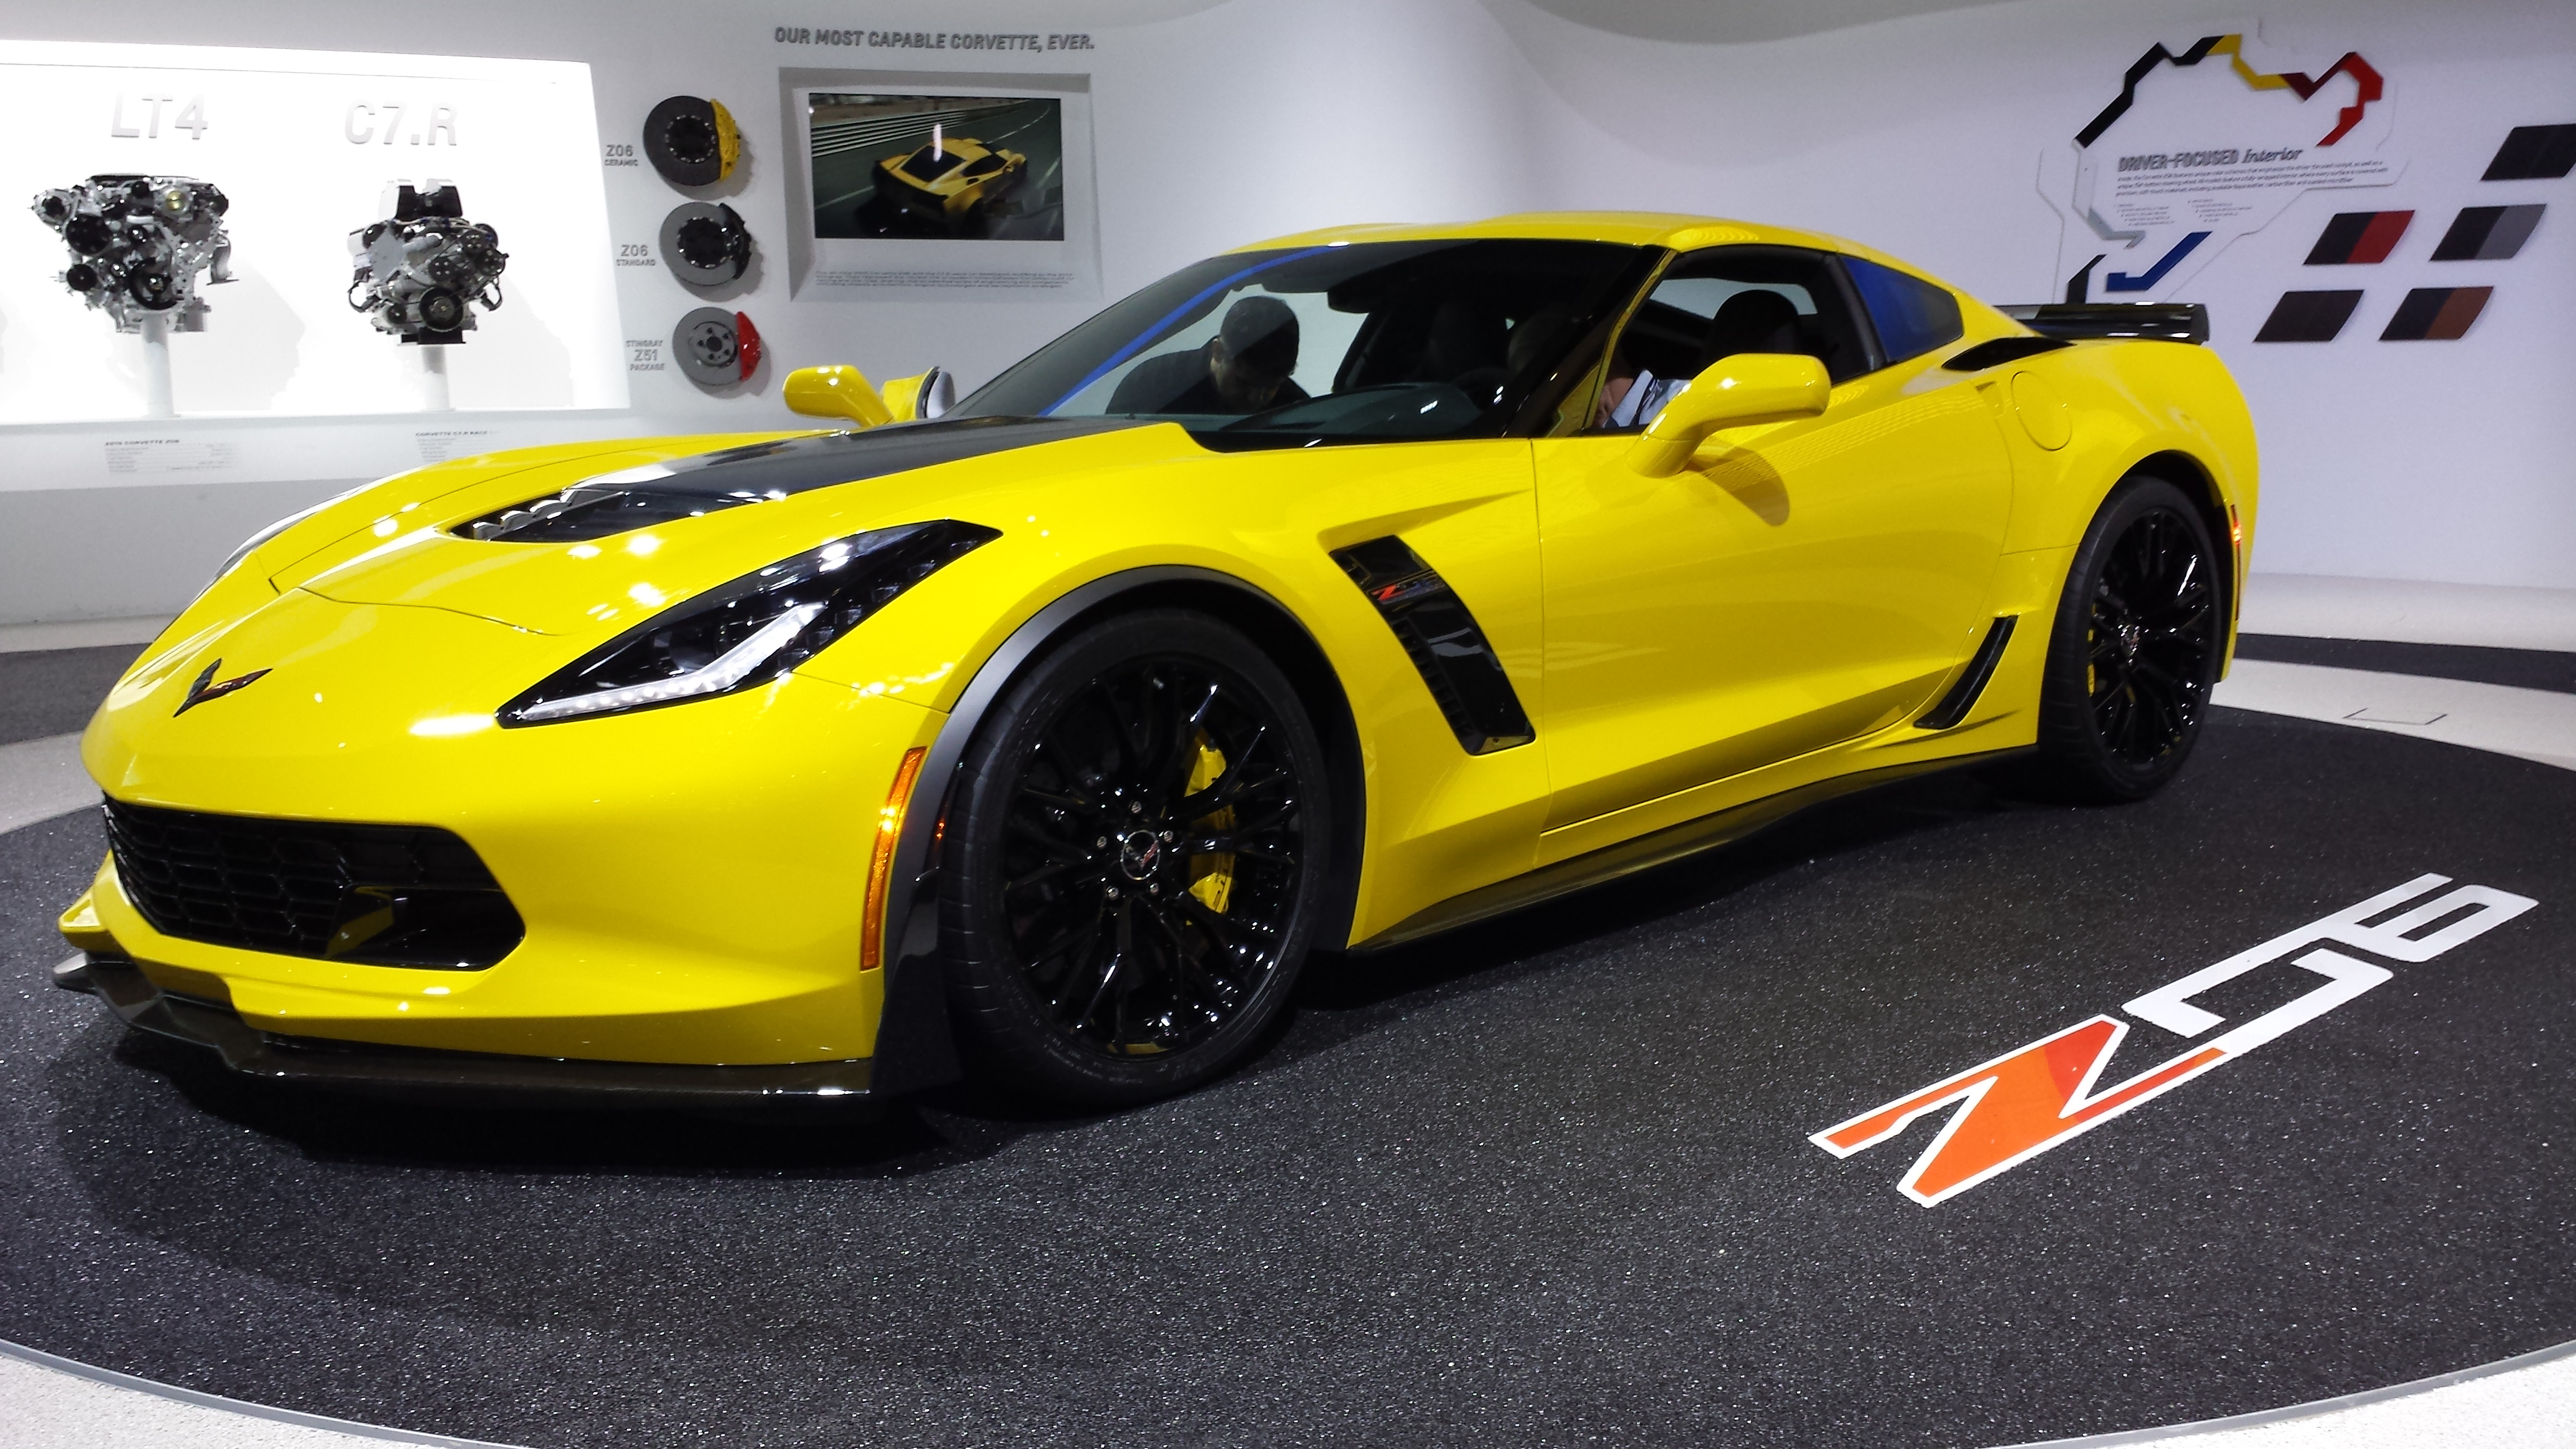 File:2015 Chevy Corvette Stingray Z06 Debut At Detriot Auto Show 1